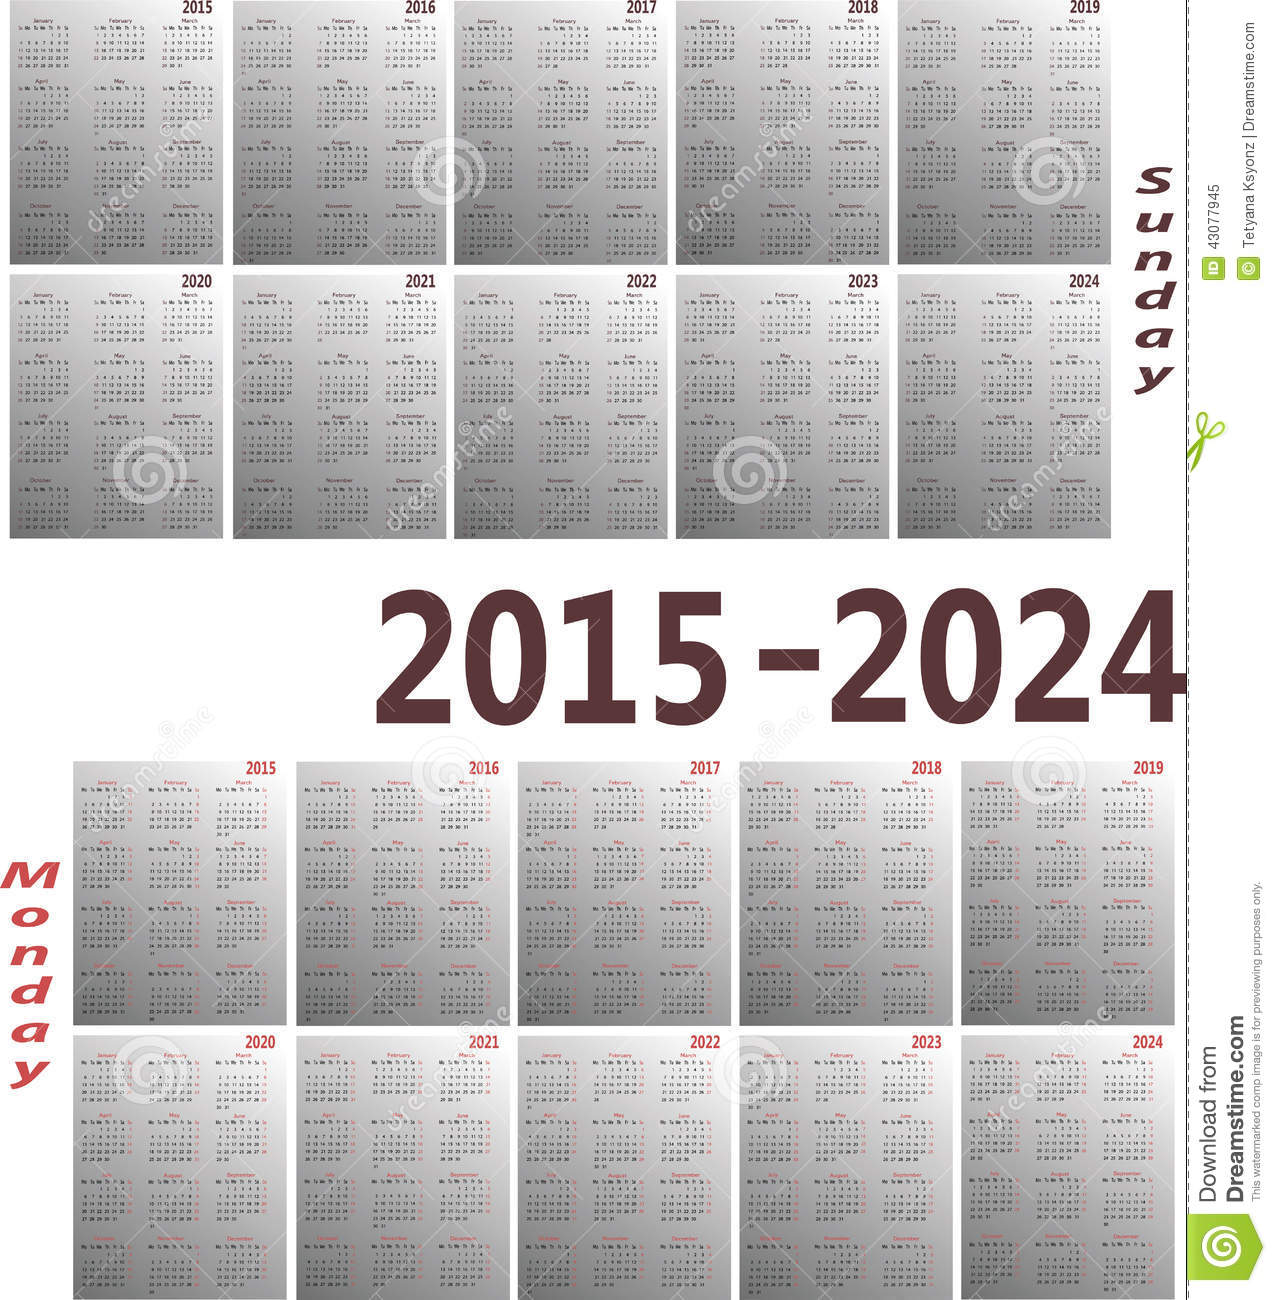 2015 Monthly Calendar With Holidays Printable Year 2015 Calendar Time And Date Calendar 2015 2024 Stock Vector Image 43077945